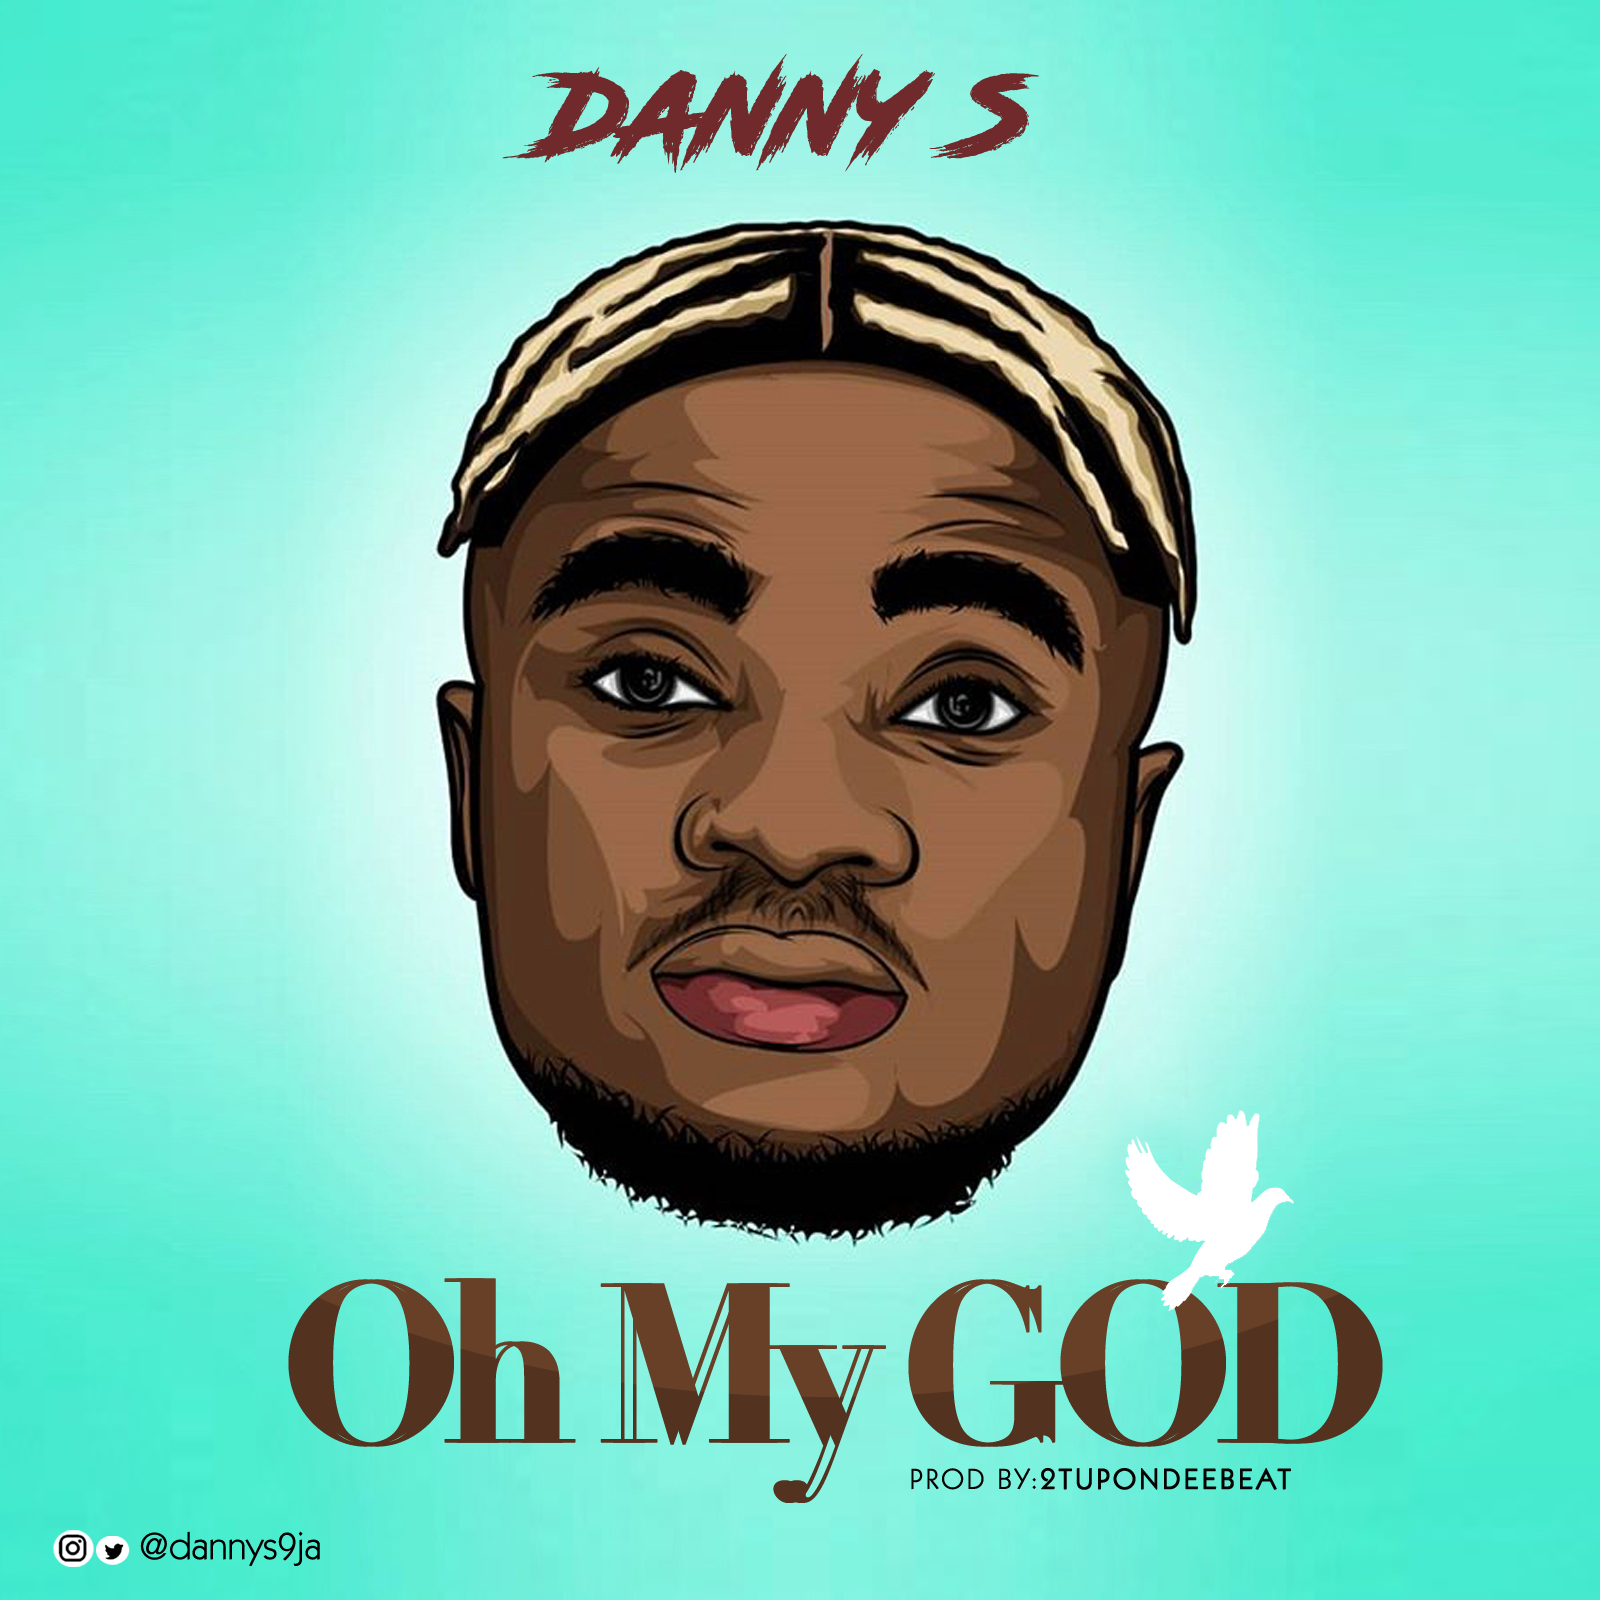 Download Mp3 Danny S Oh My God Omg Download Mp3 Music